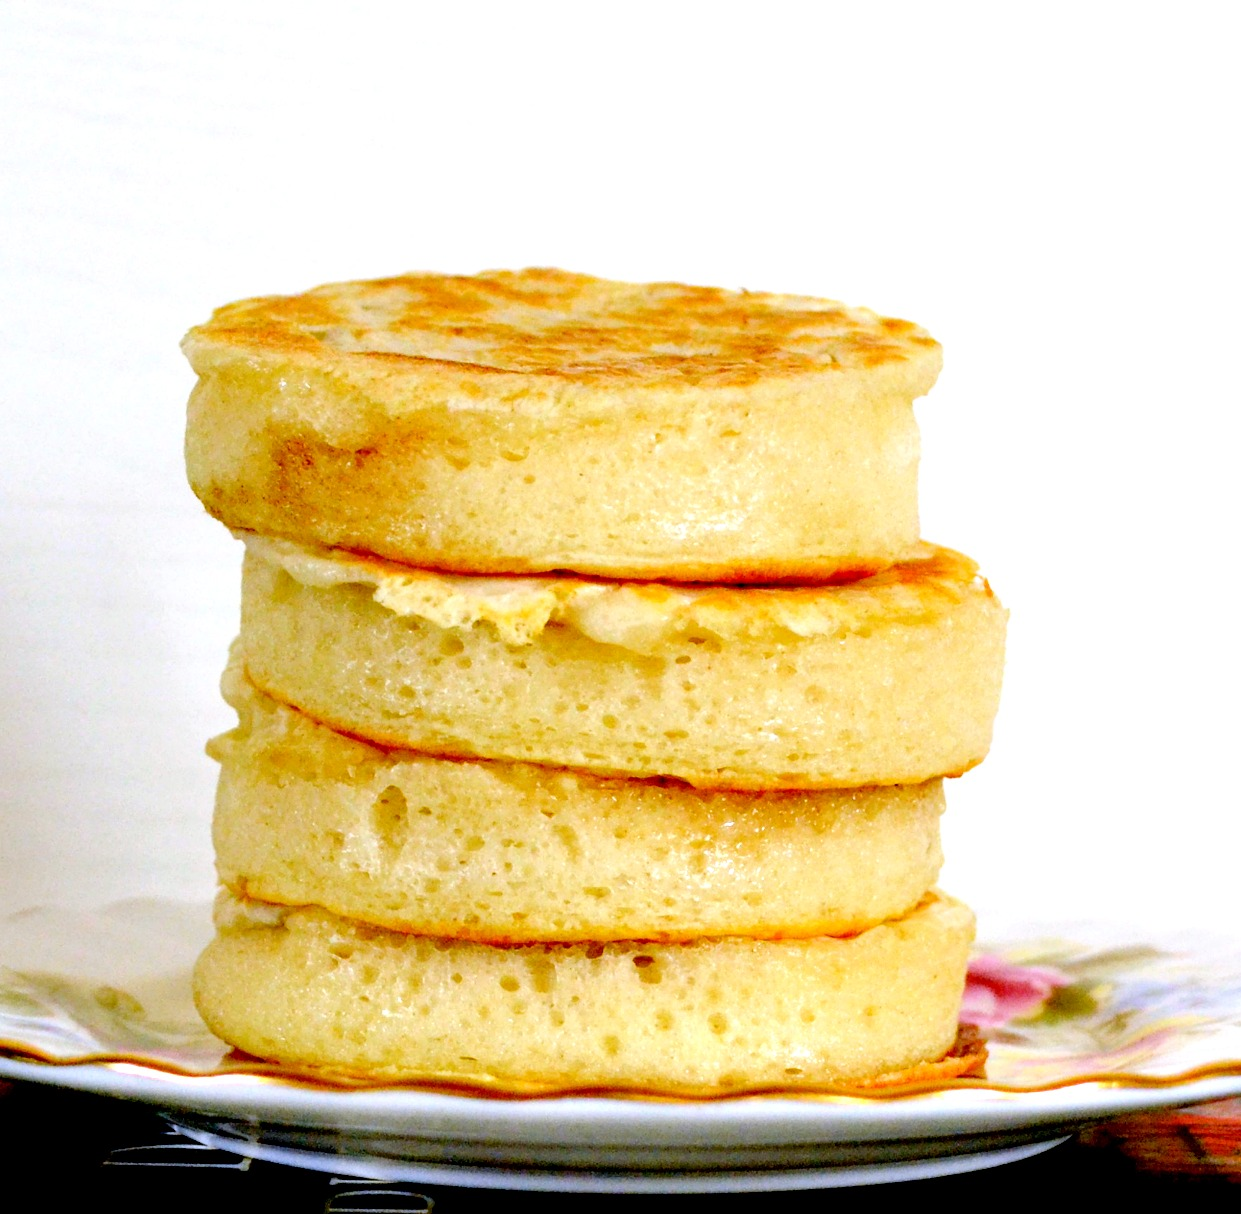 Crumpets from Rebecca by Daphne du Maurier